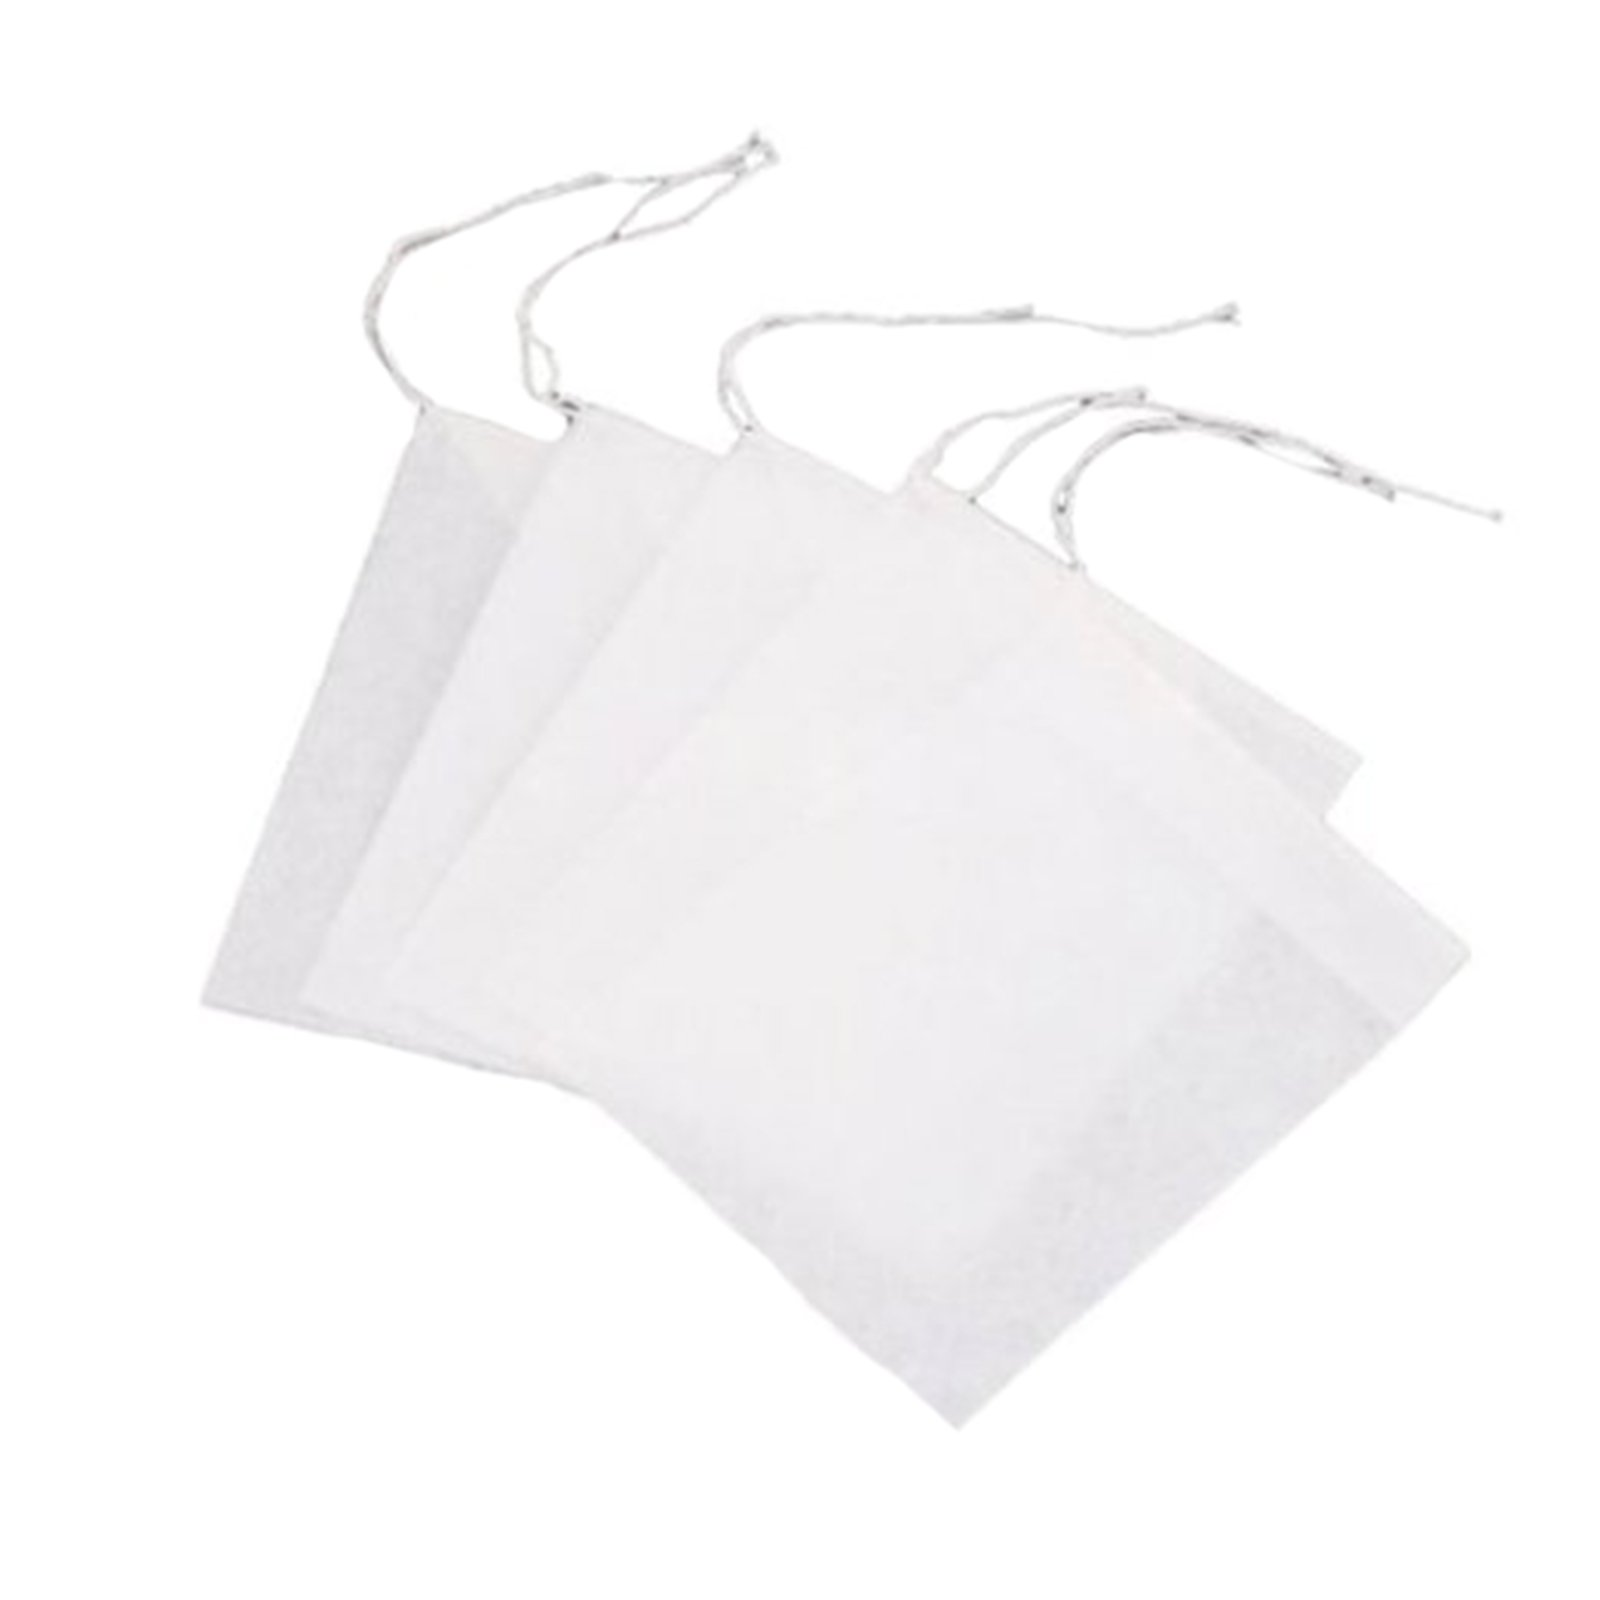 ZSL Tea Filter Bags Safety Pack of 100 Mini Disposable String Drawstring Empty Heat Seal Paper Tea Bags